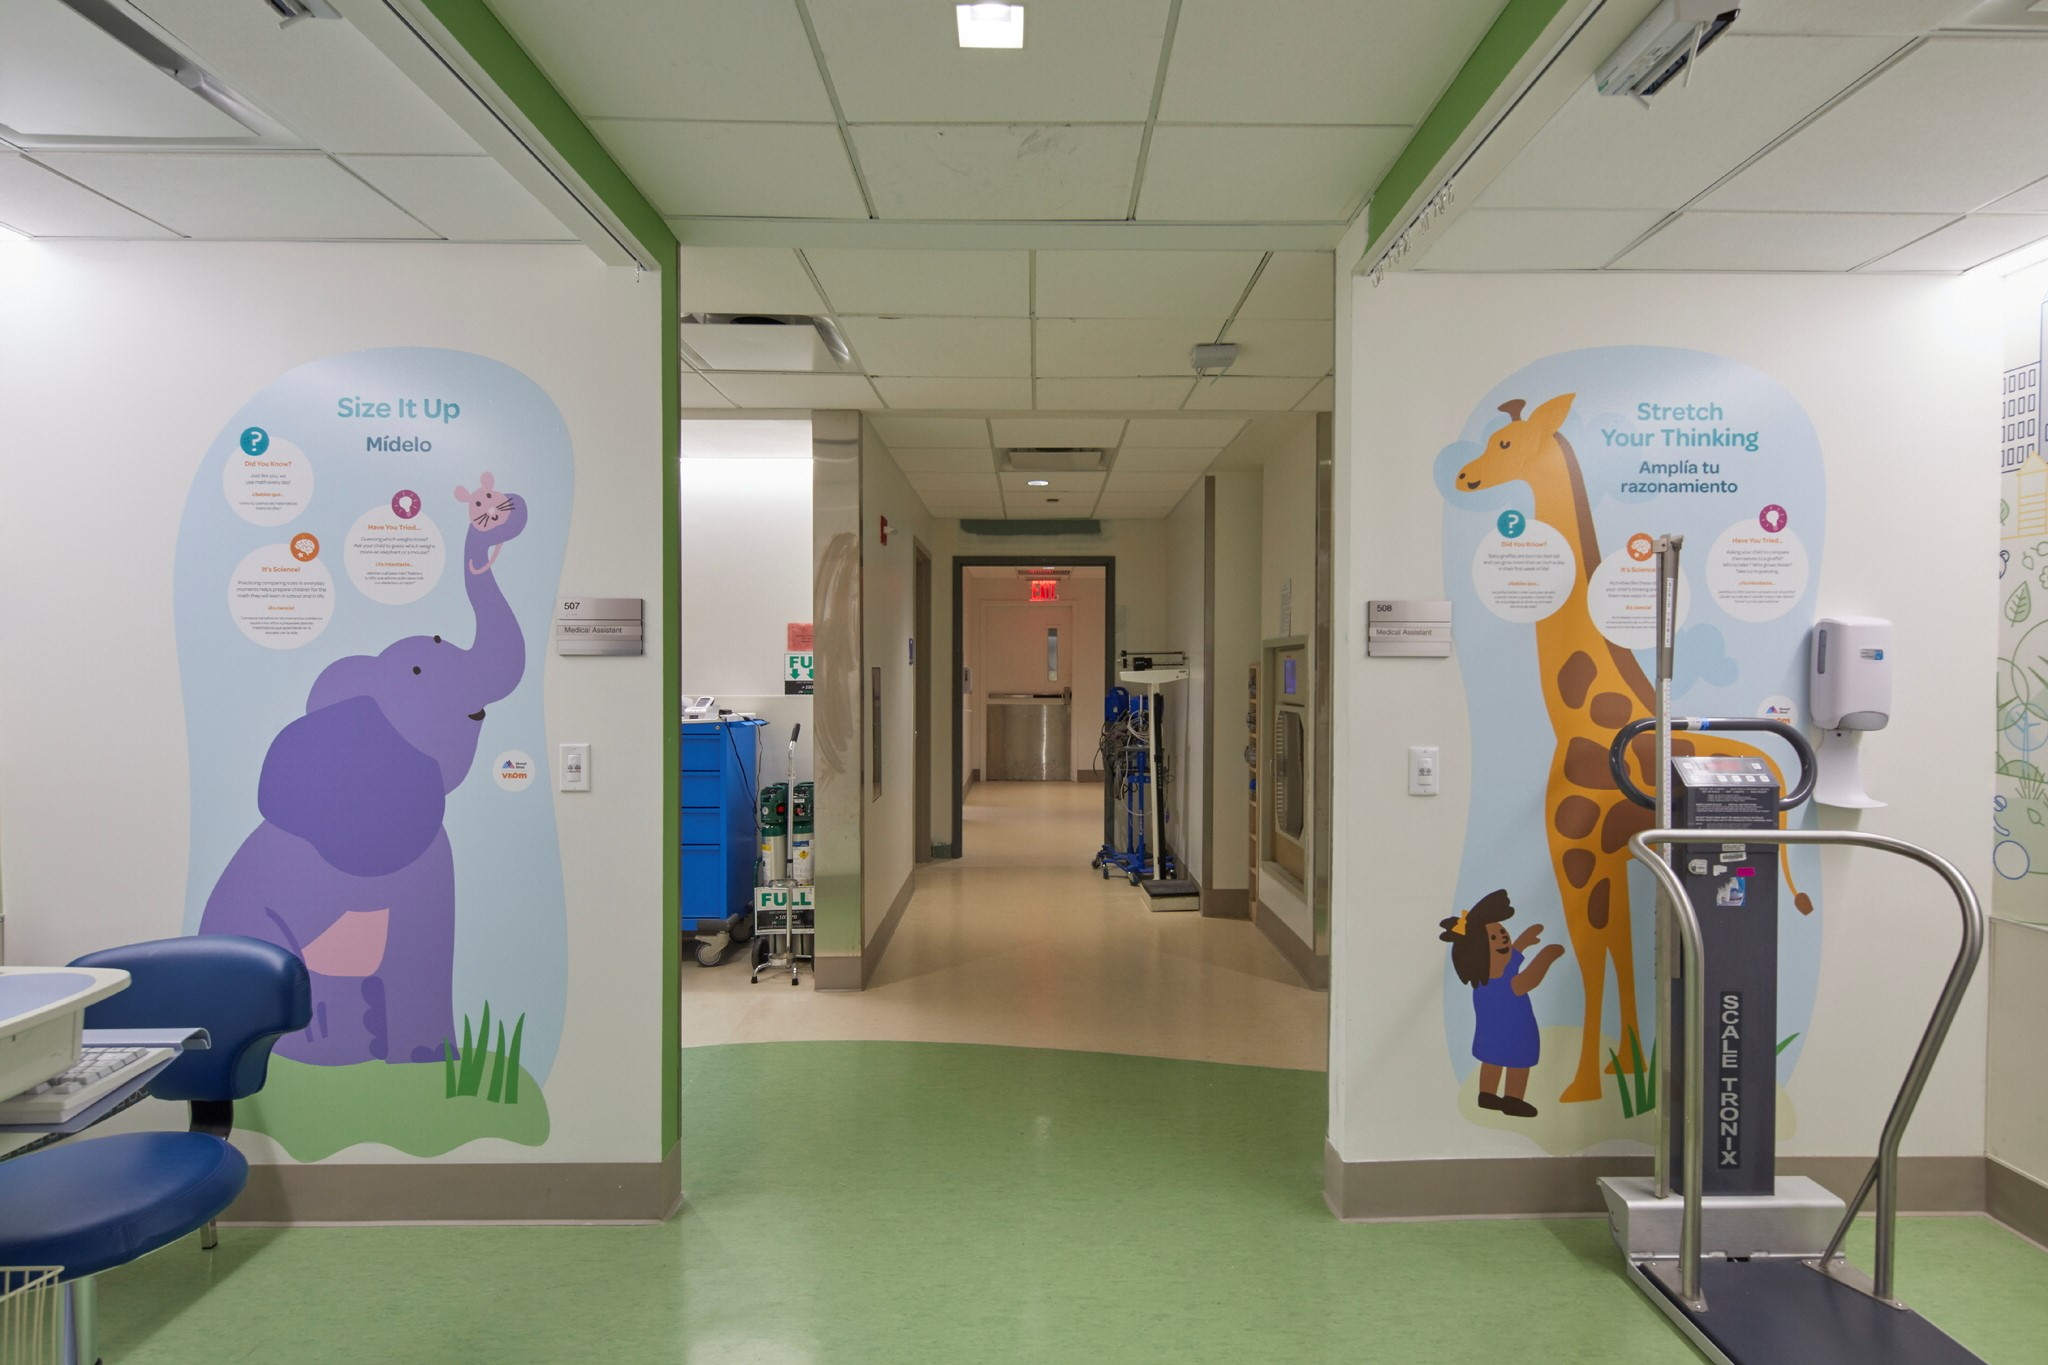 Mt. Sinai Kravis Children's Hospital